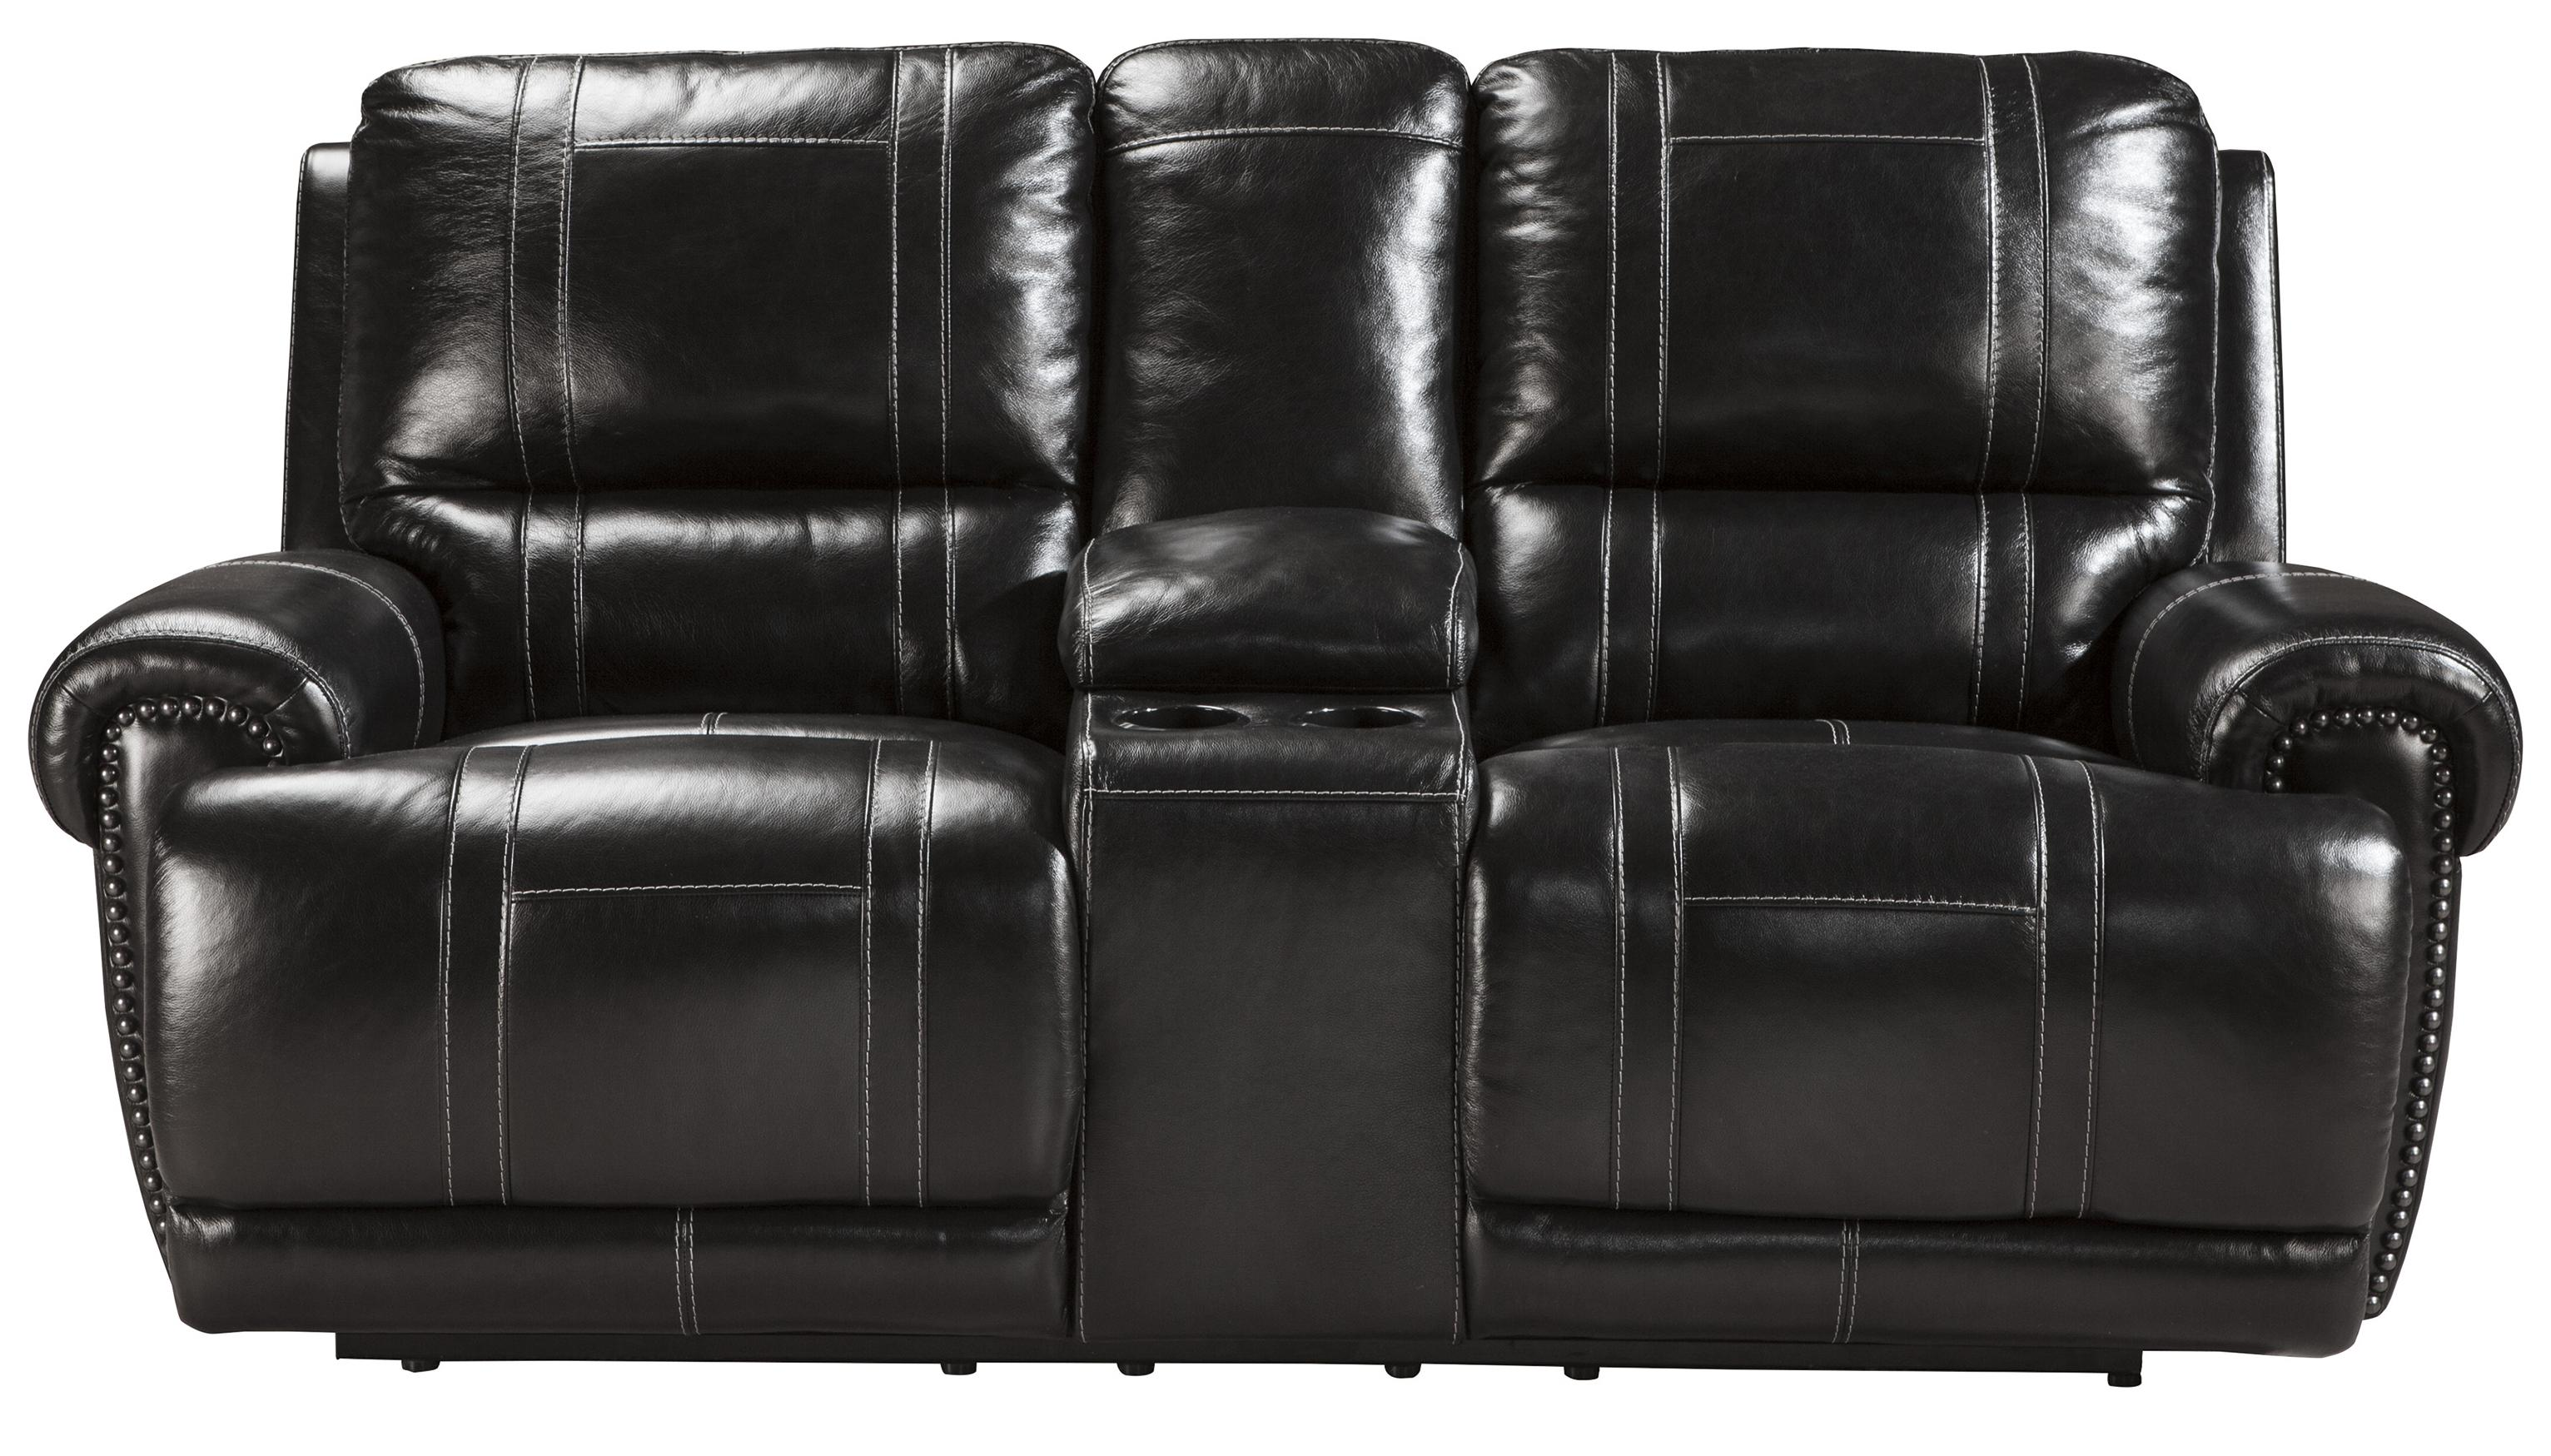 Signature Design by Ashley Paron - Antique Double Reclining Power Loveseat w/ Console - Item Number: U7590196